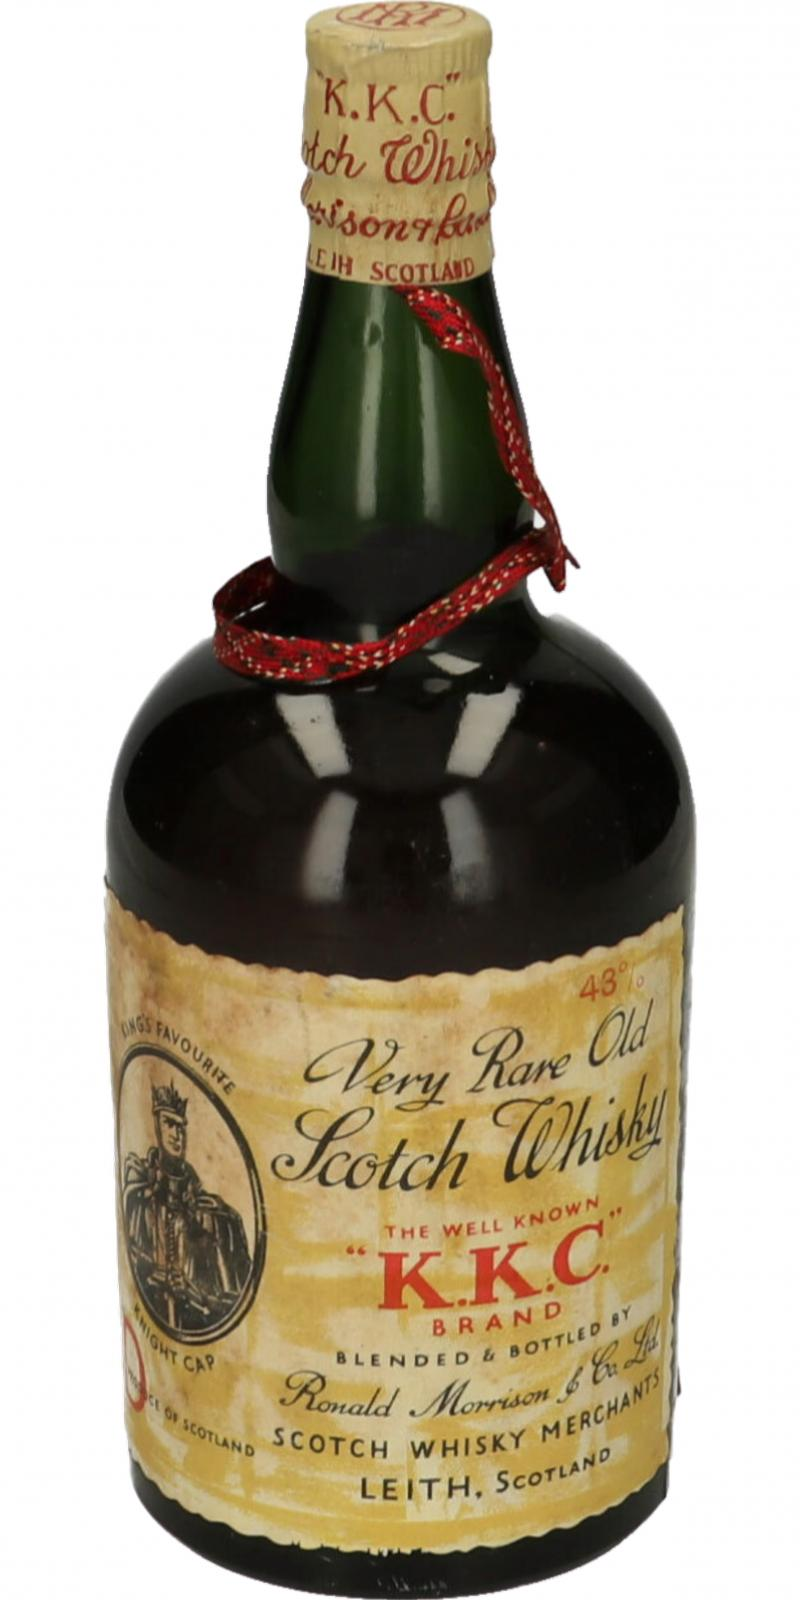 King's Favourite Knight Cap Very Rare Old Scotch Whisky